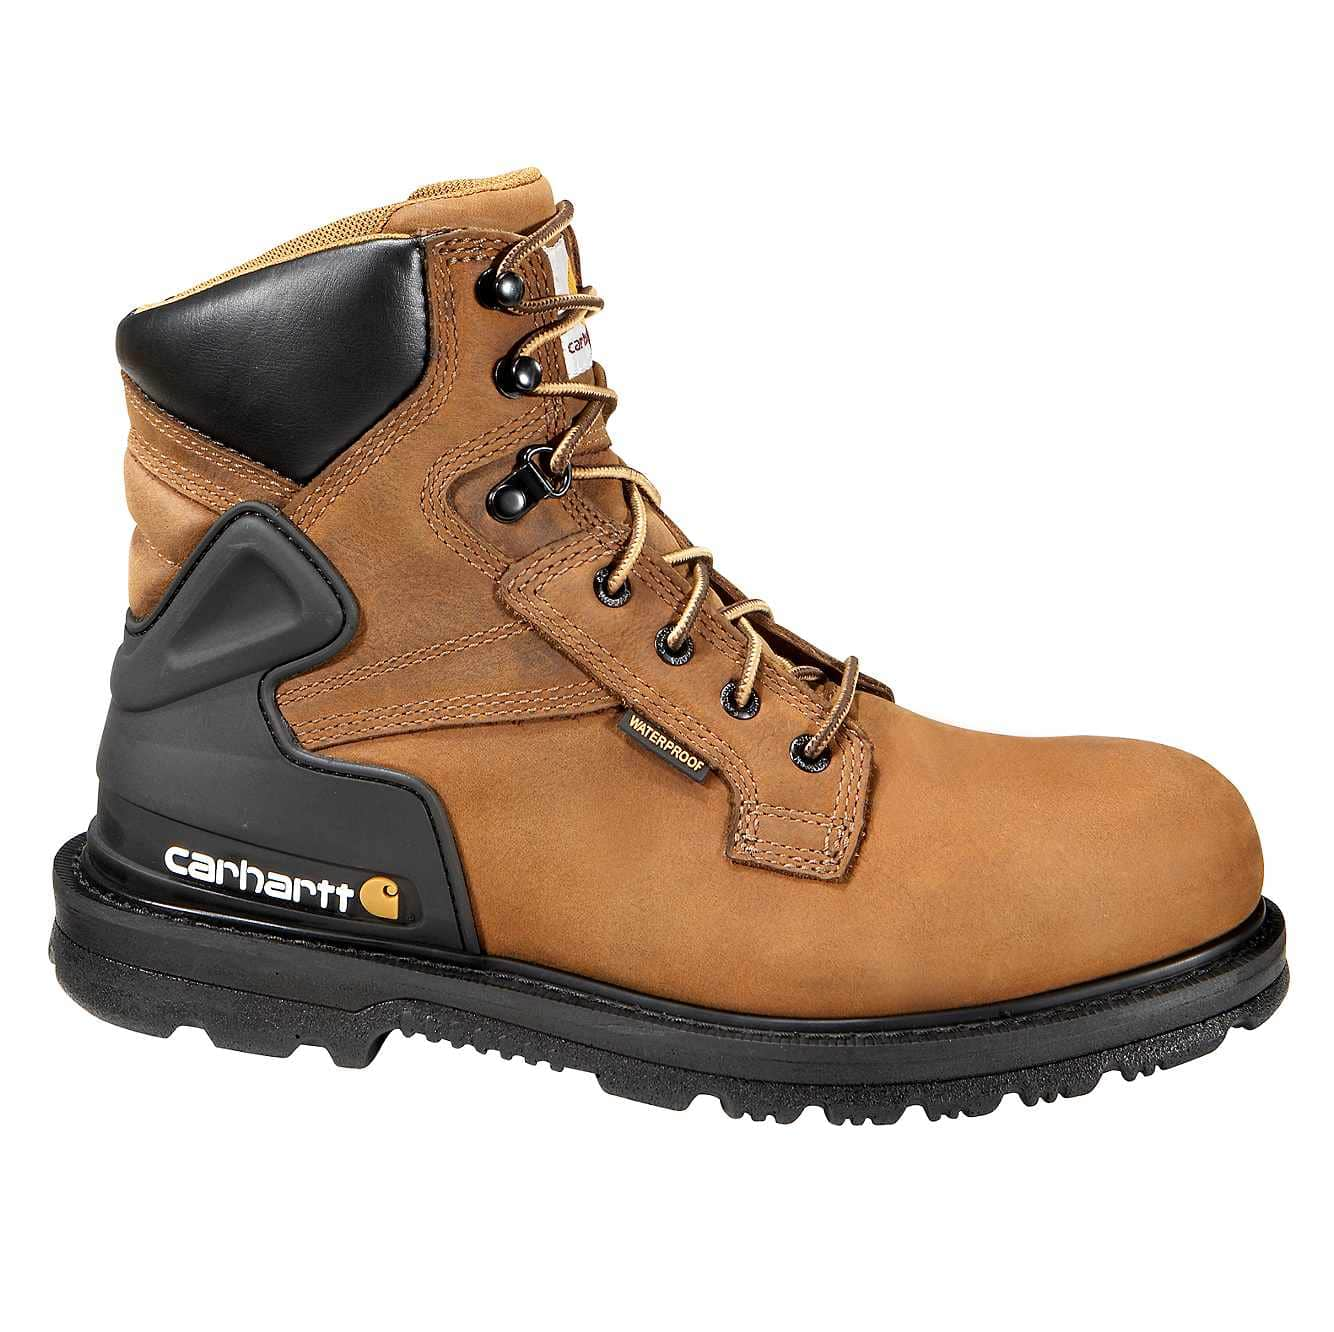 Men's 6-Inch Steel Toe Work Boot CMW6220 | Carhartt